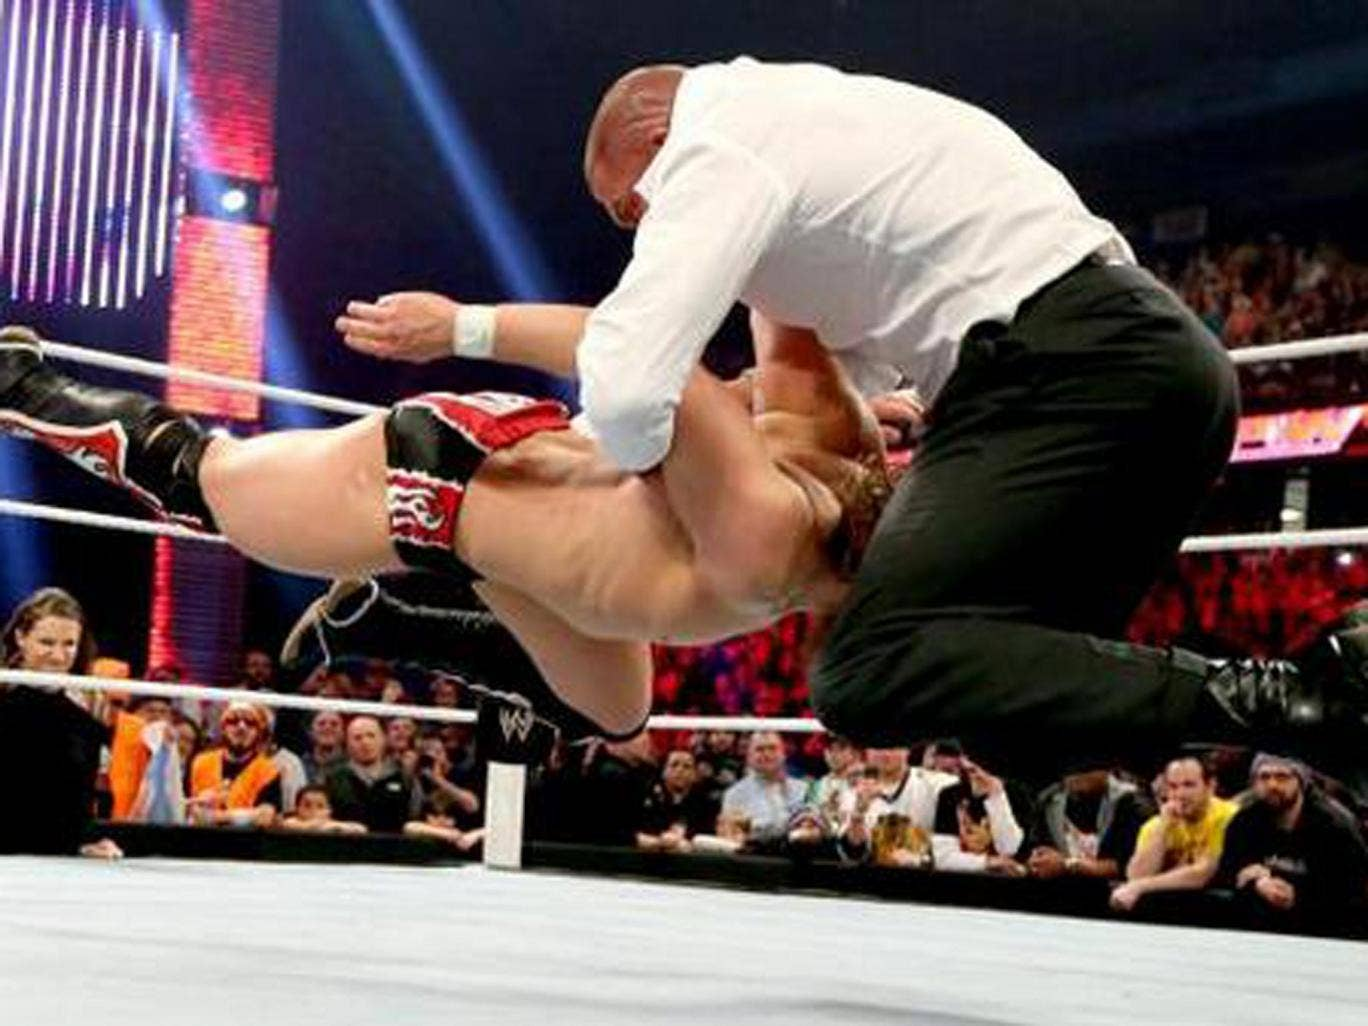 Triple H delivers a pedigree to Daniel Bryan on Raw in Chicago